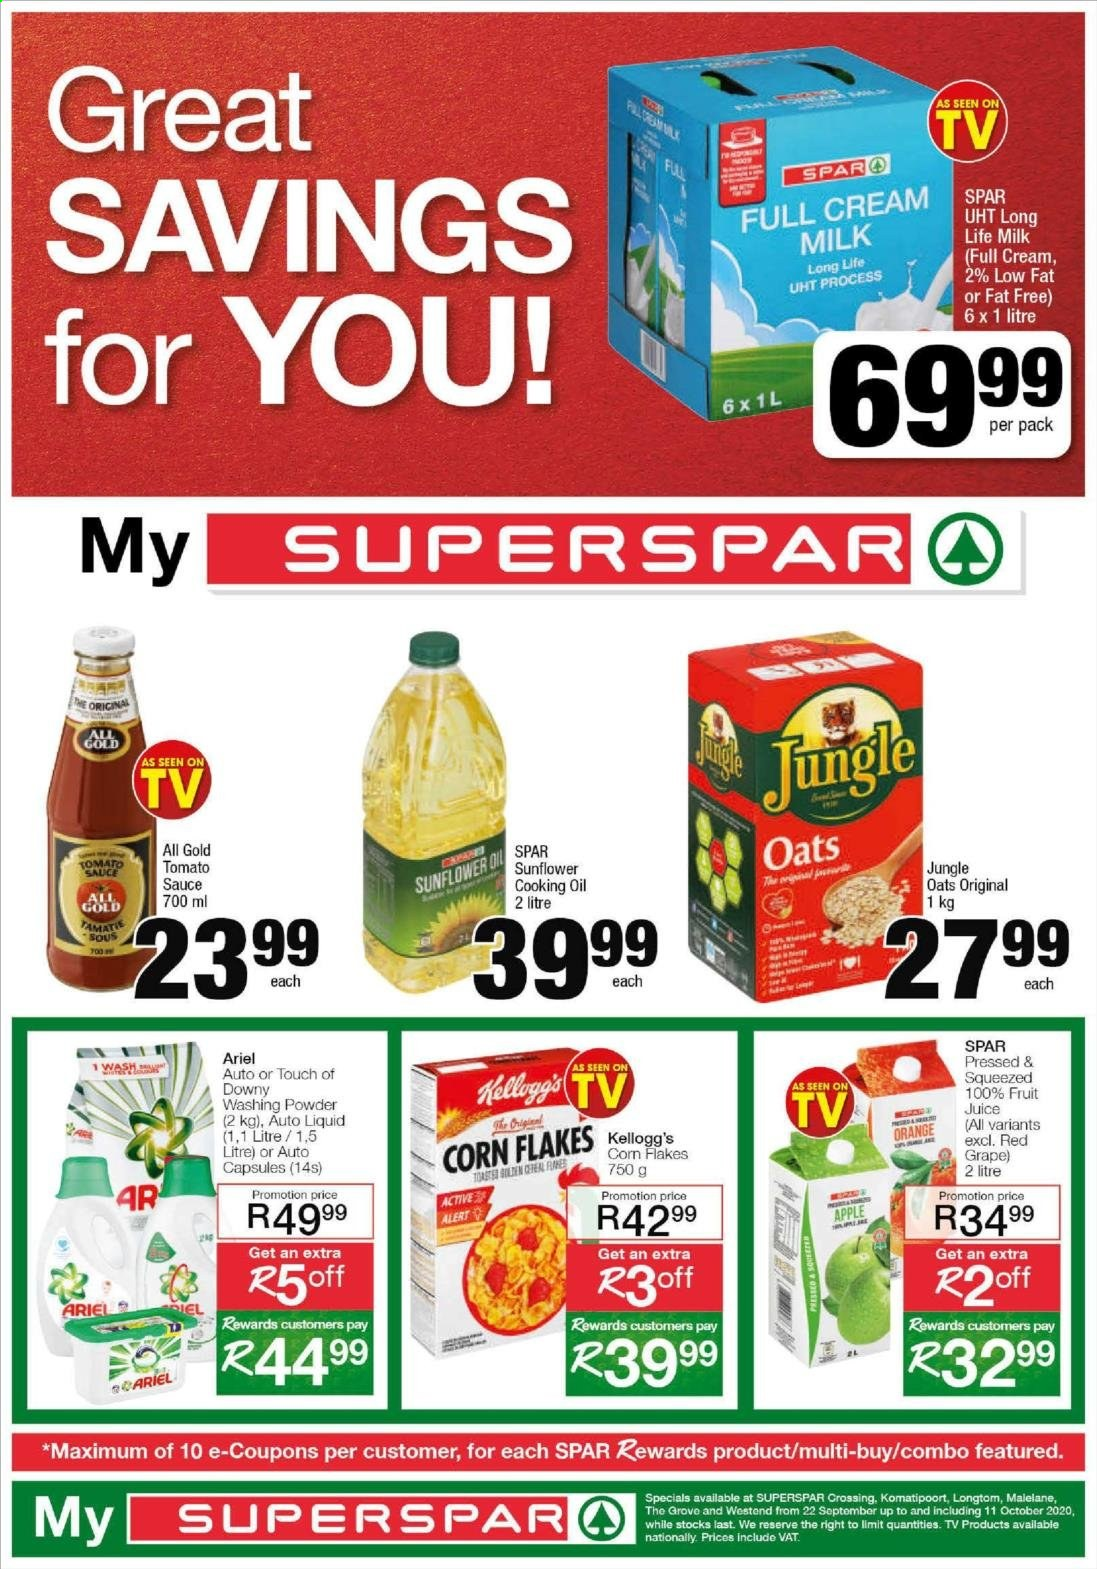 SPAR catalogue  - 09.22.2020 - 10.11.2020 - Sales products - apple, capsules, corn, cream, downy, milk, tomato sauce, oats, corn flakes, fruit juice, ariel, juice, sauce, flakes, sunflower, oil, orange, washing powder, long life milk, tomato, apples, alert. Page 1.